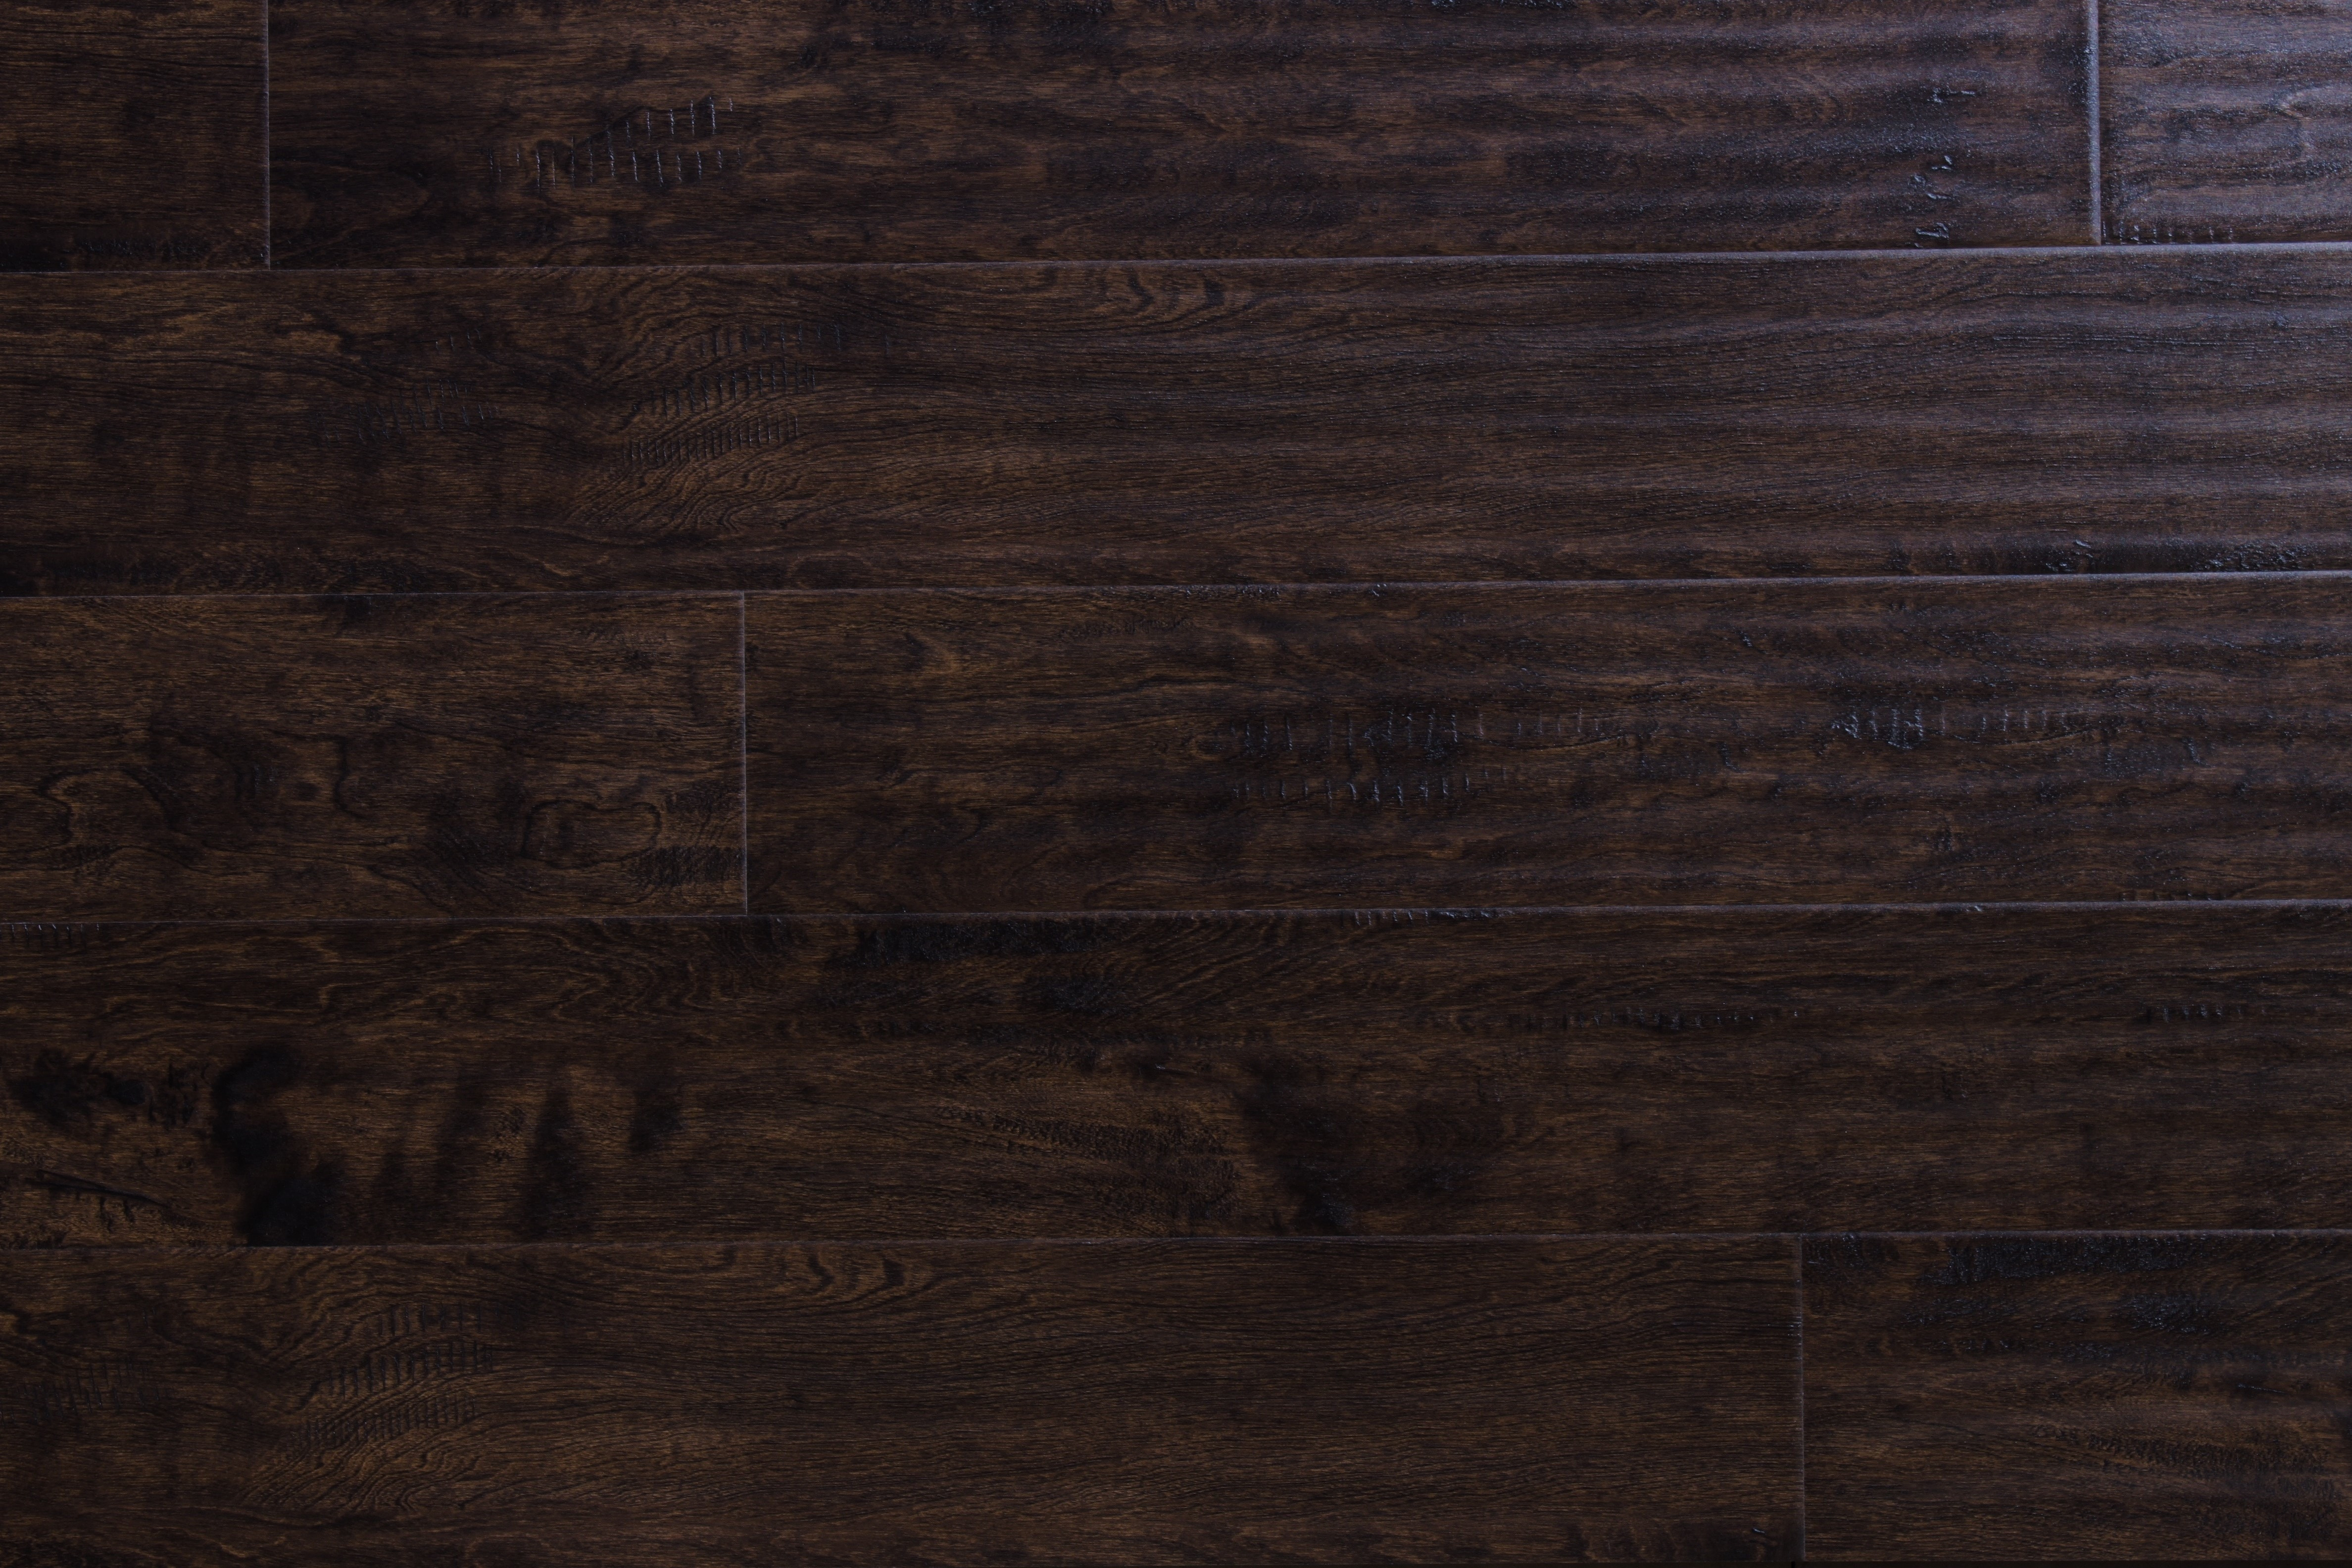 hardwood flooring phoenix az of wood flooring free samples available at builddirecta throughout tailor multi gb 5874277bb8d3c